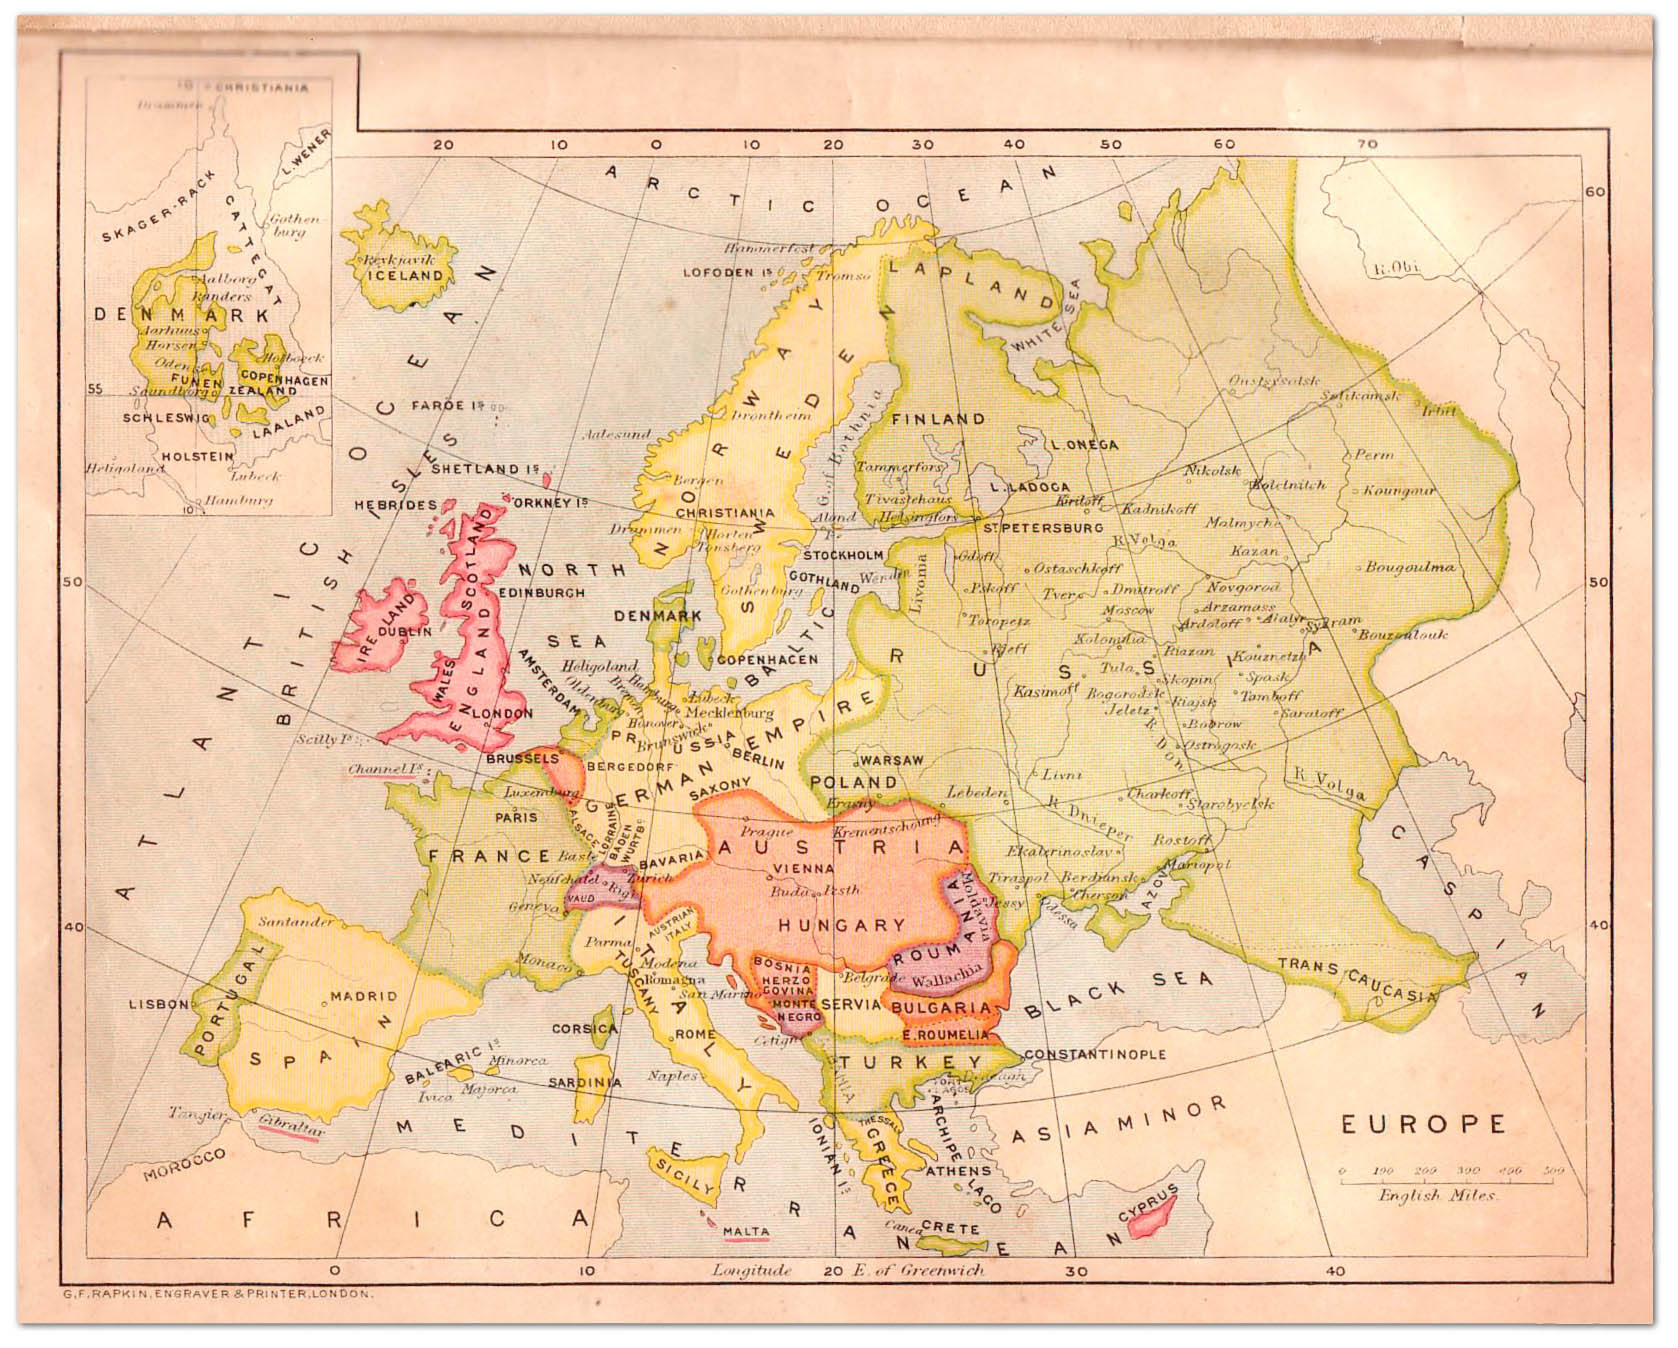 Map Of Europe 1908 Map Of Us Western States - Us-map-1908